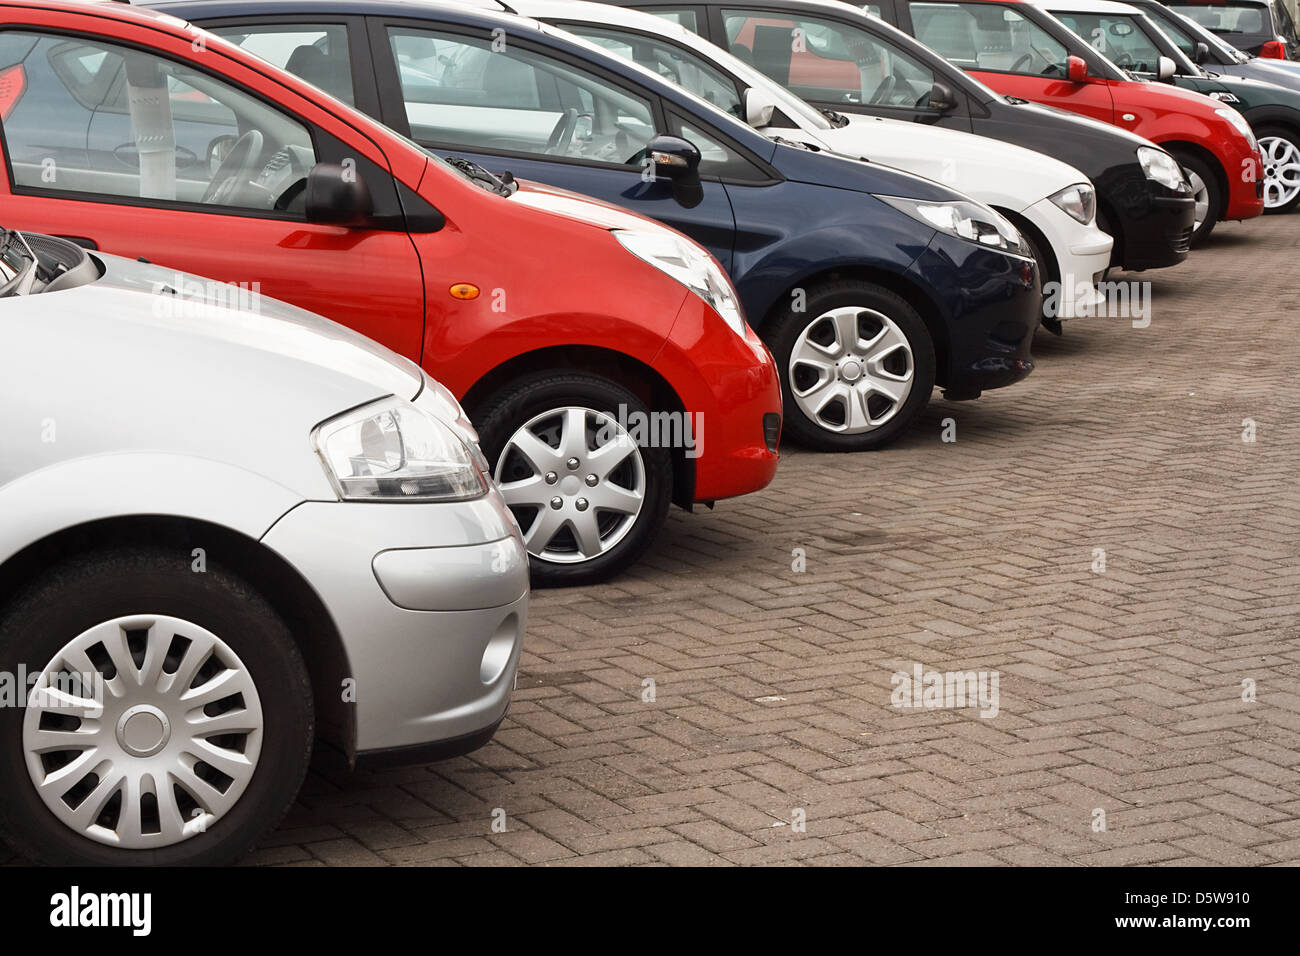 row of different european marques of used cars for retail sale on ...